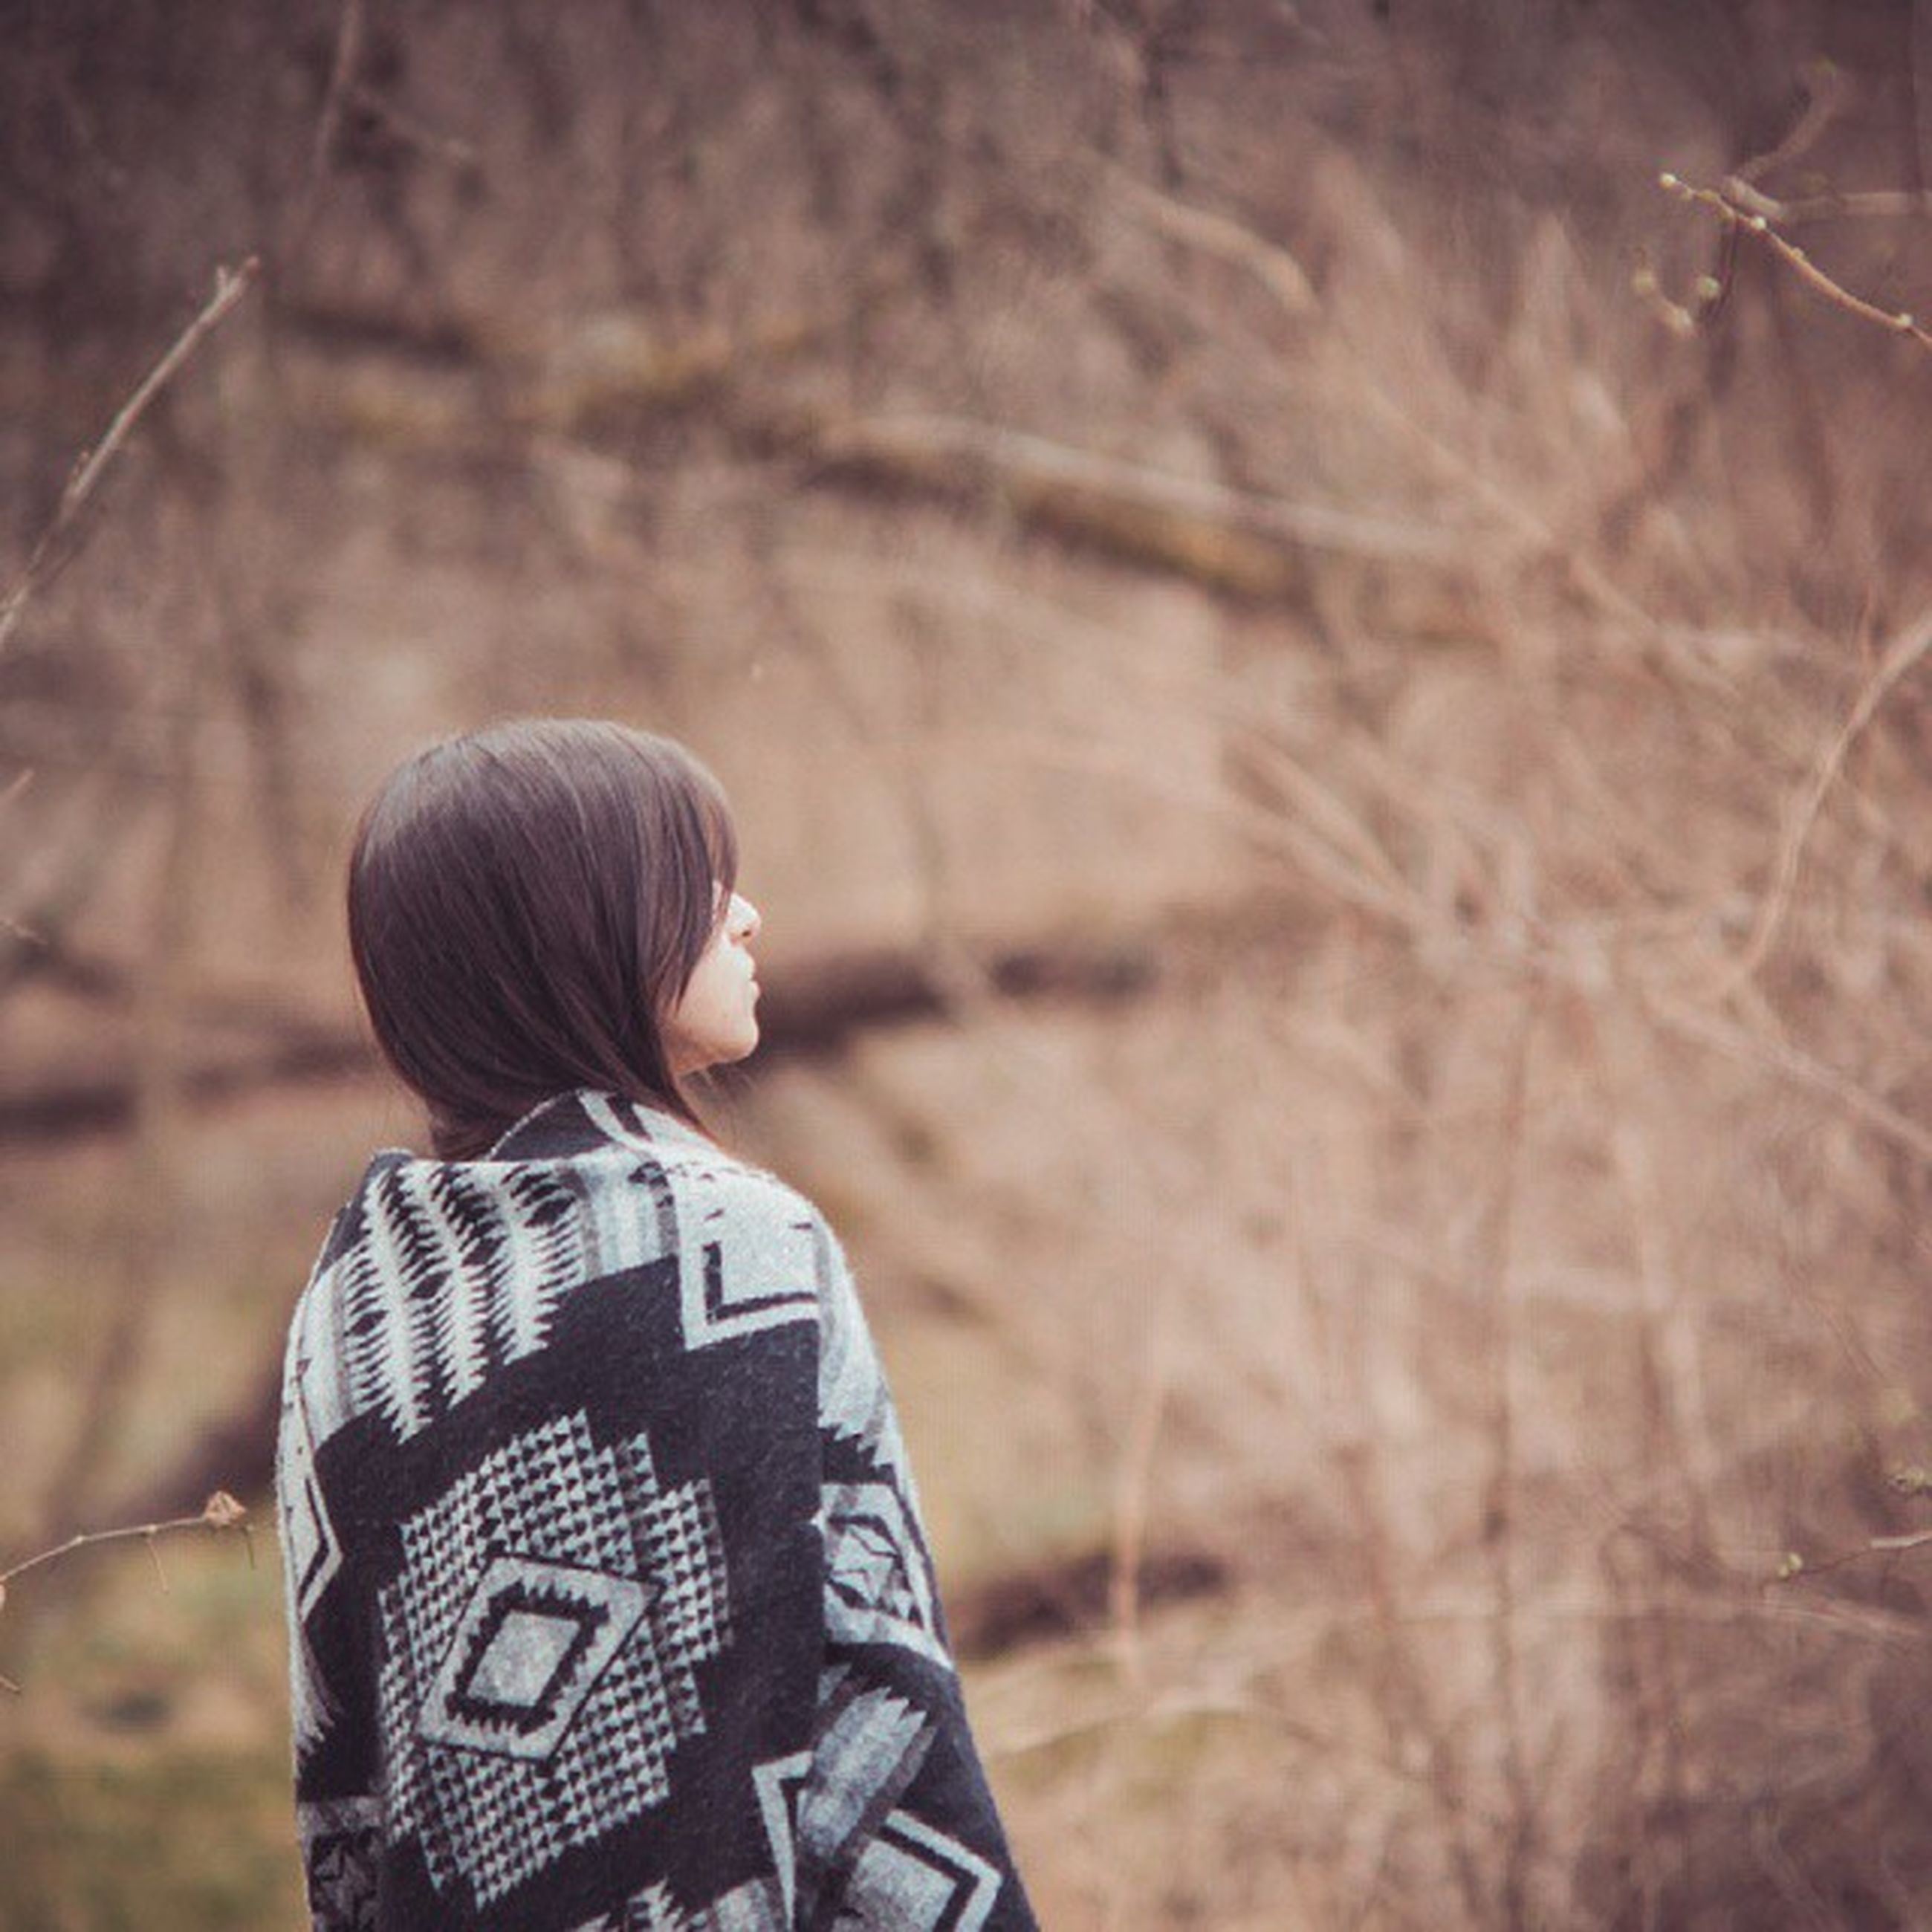 rear view, lifestyles, focus on foreground, leisure activity, casual clothing, waist up, standing, three quarter length, childhood, holding, boys, elementary age, field, outdoors, nature, side view, men, day